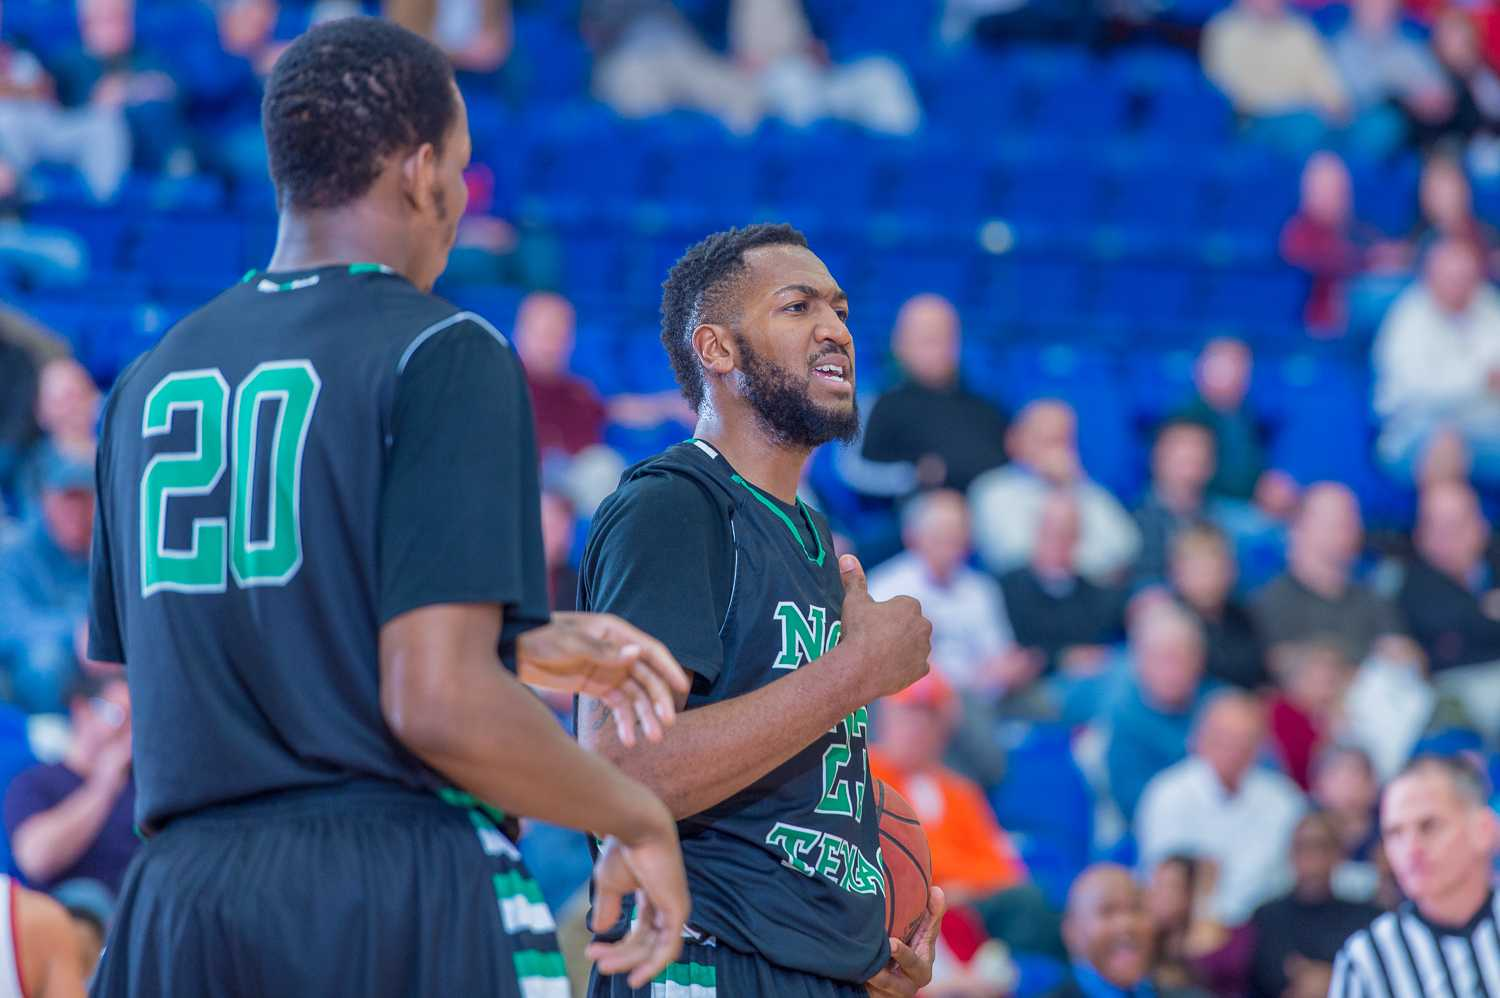 Williams (23) questions a ref on a call in the second half.